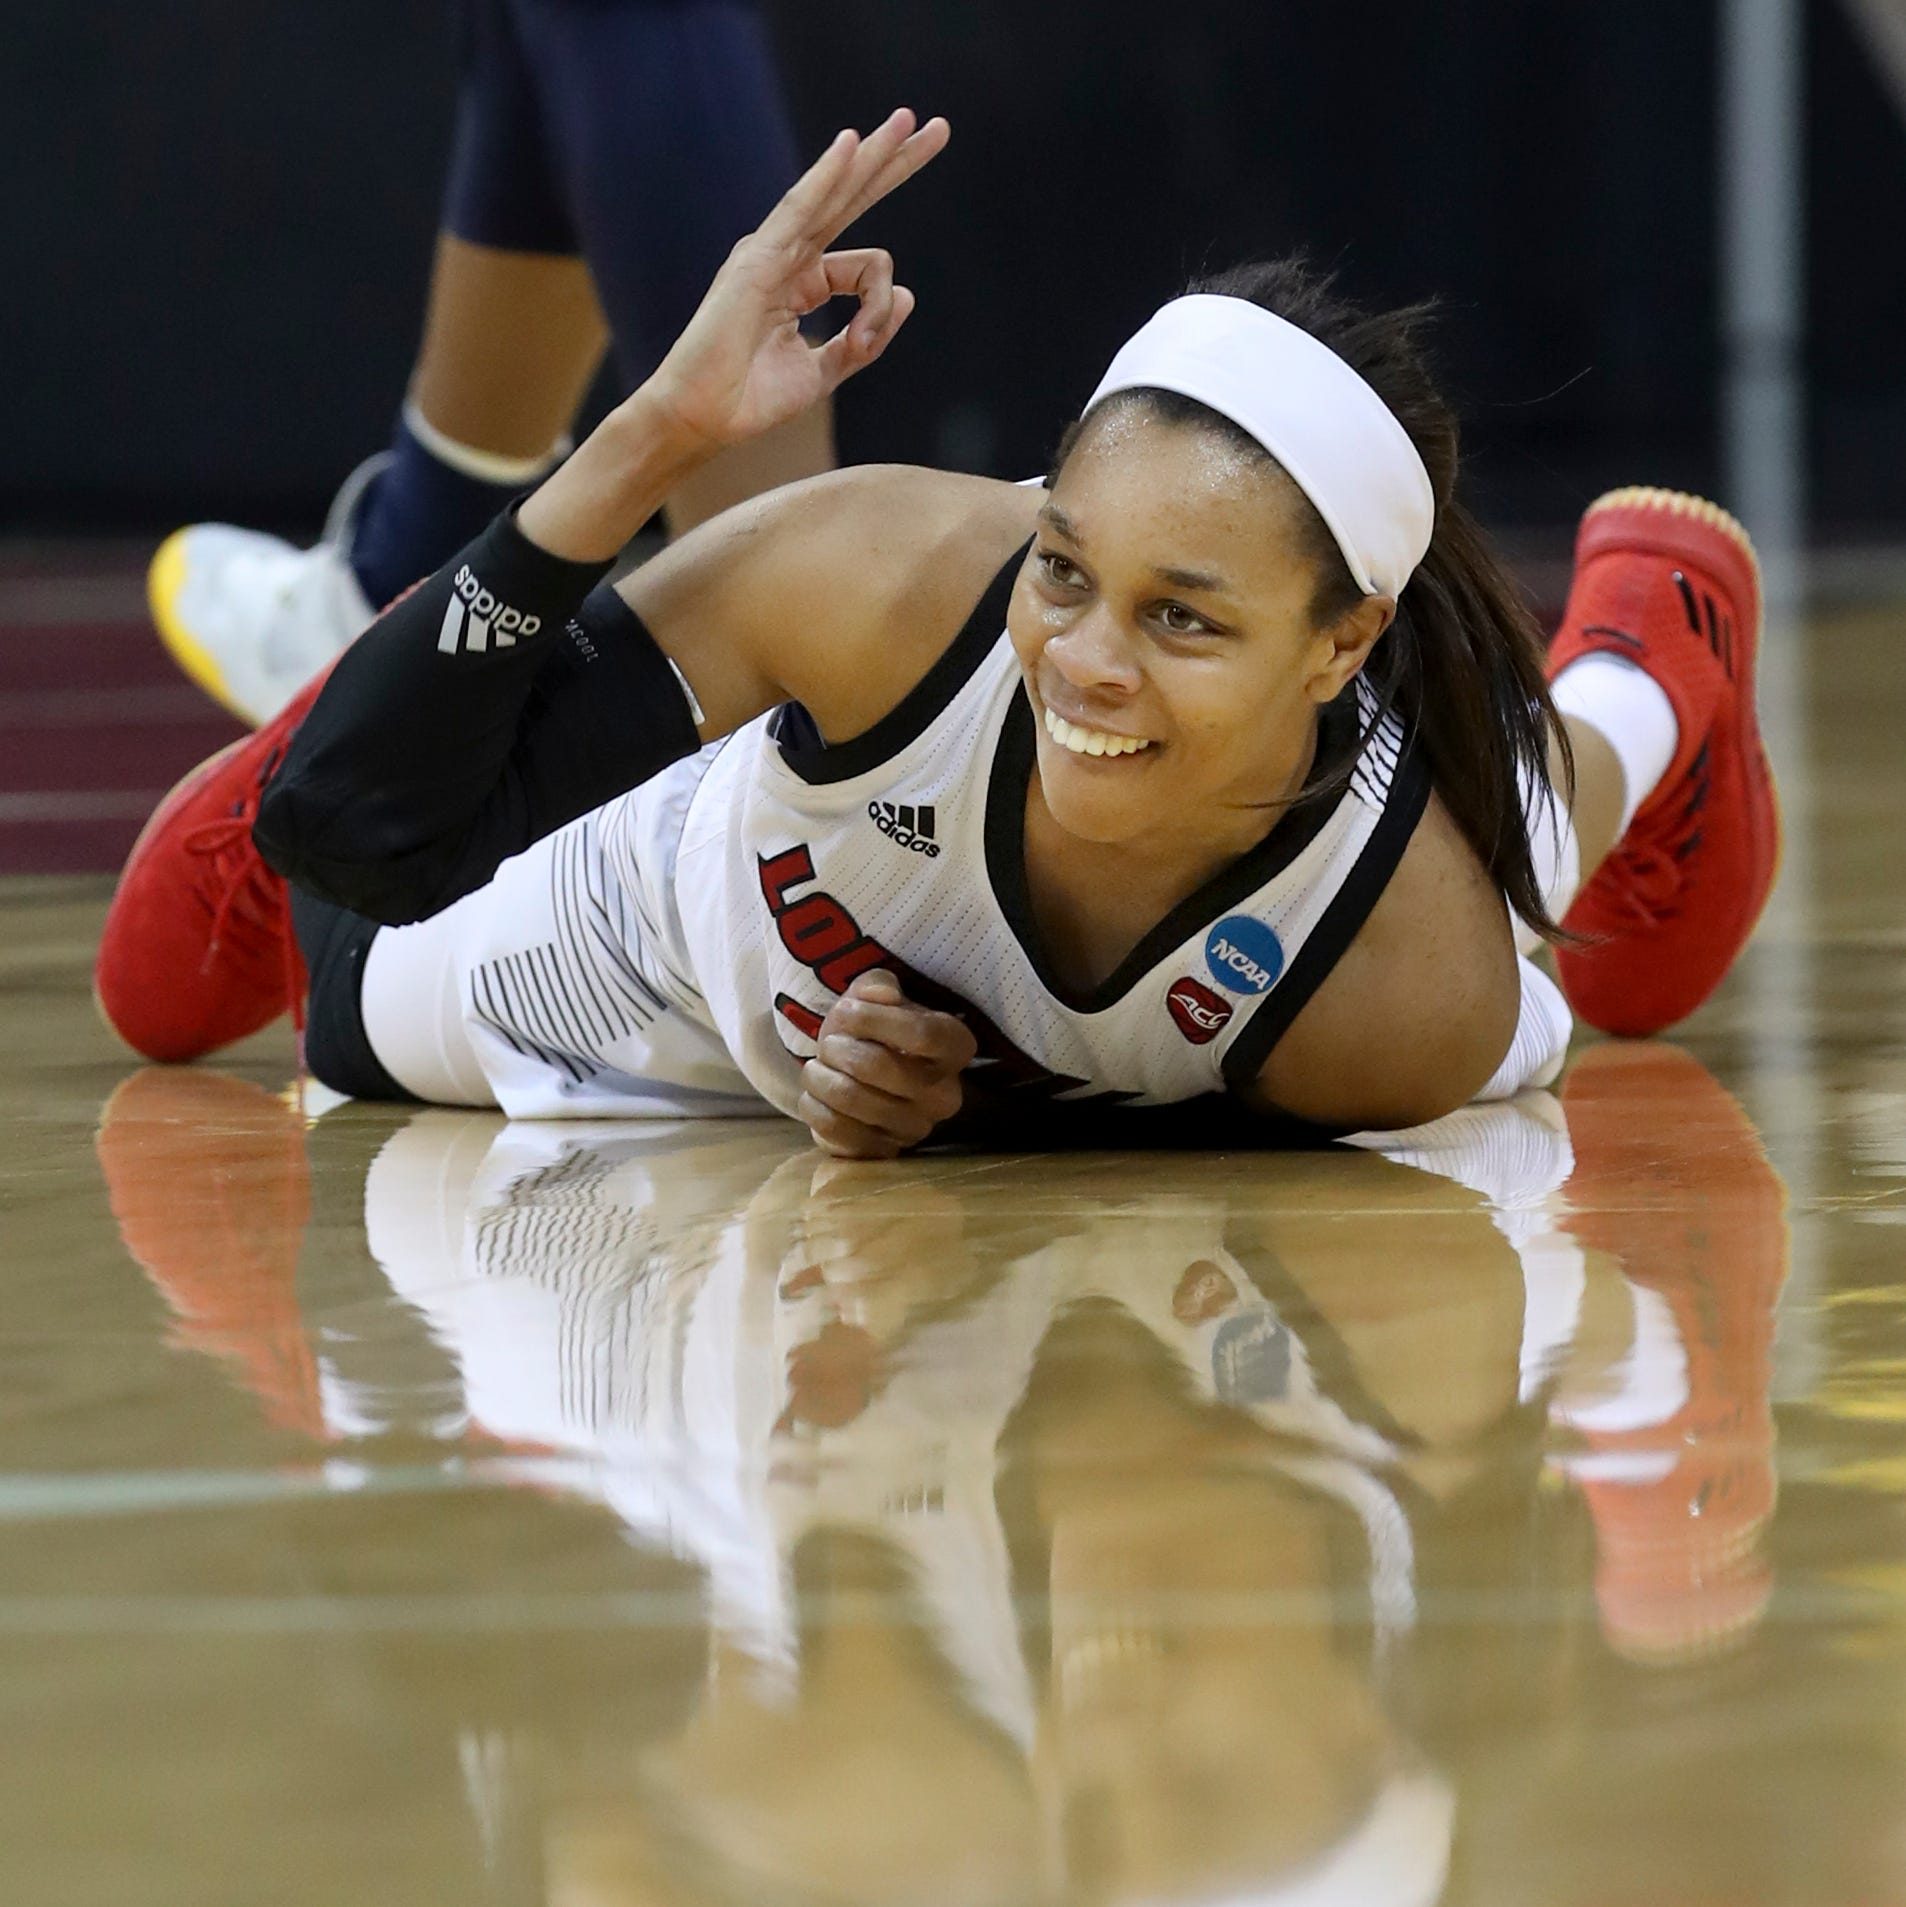 In her final home game, Durr steals the show as U of L heads to Sweet 16